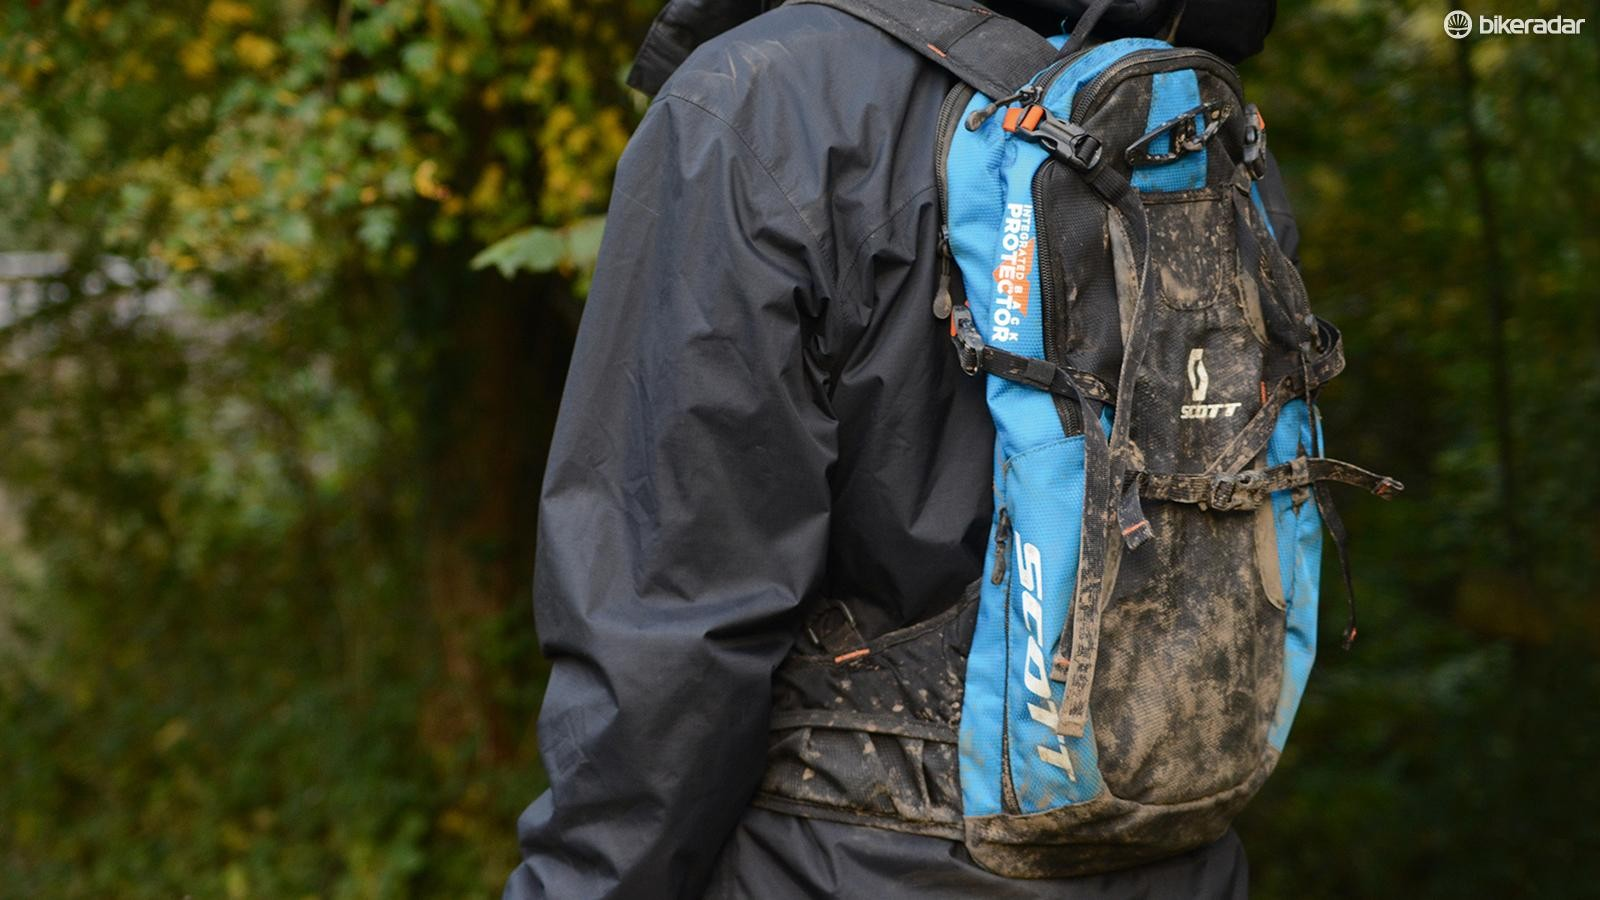 Scott's Grafter Protect 12 Backpack has had some welcome updates on previous versions